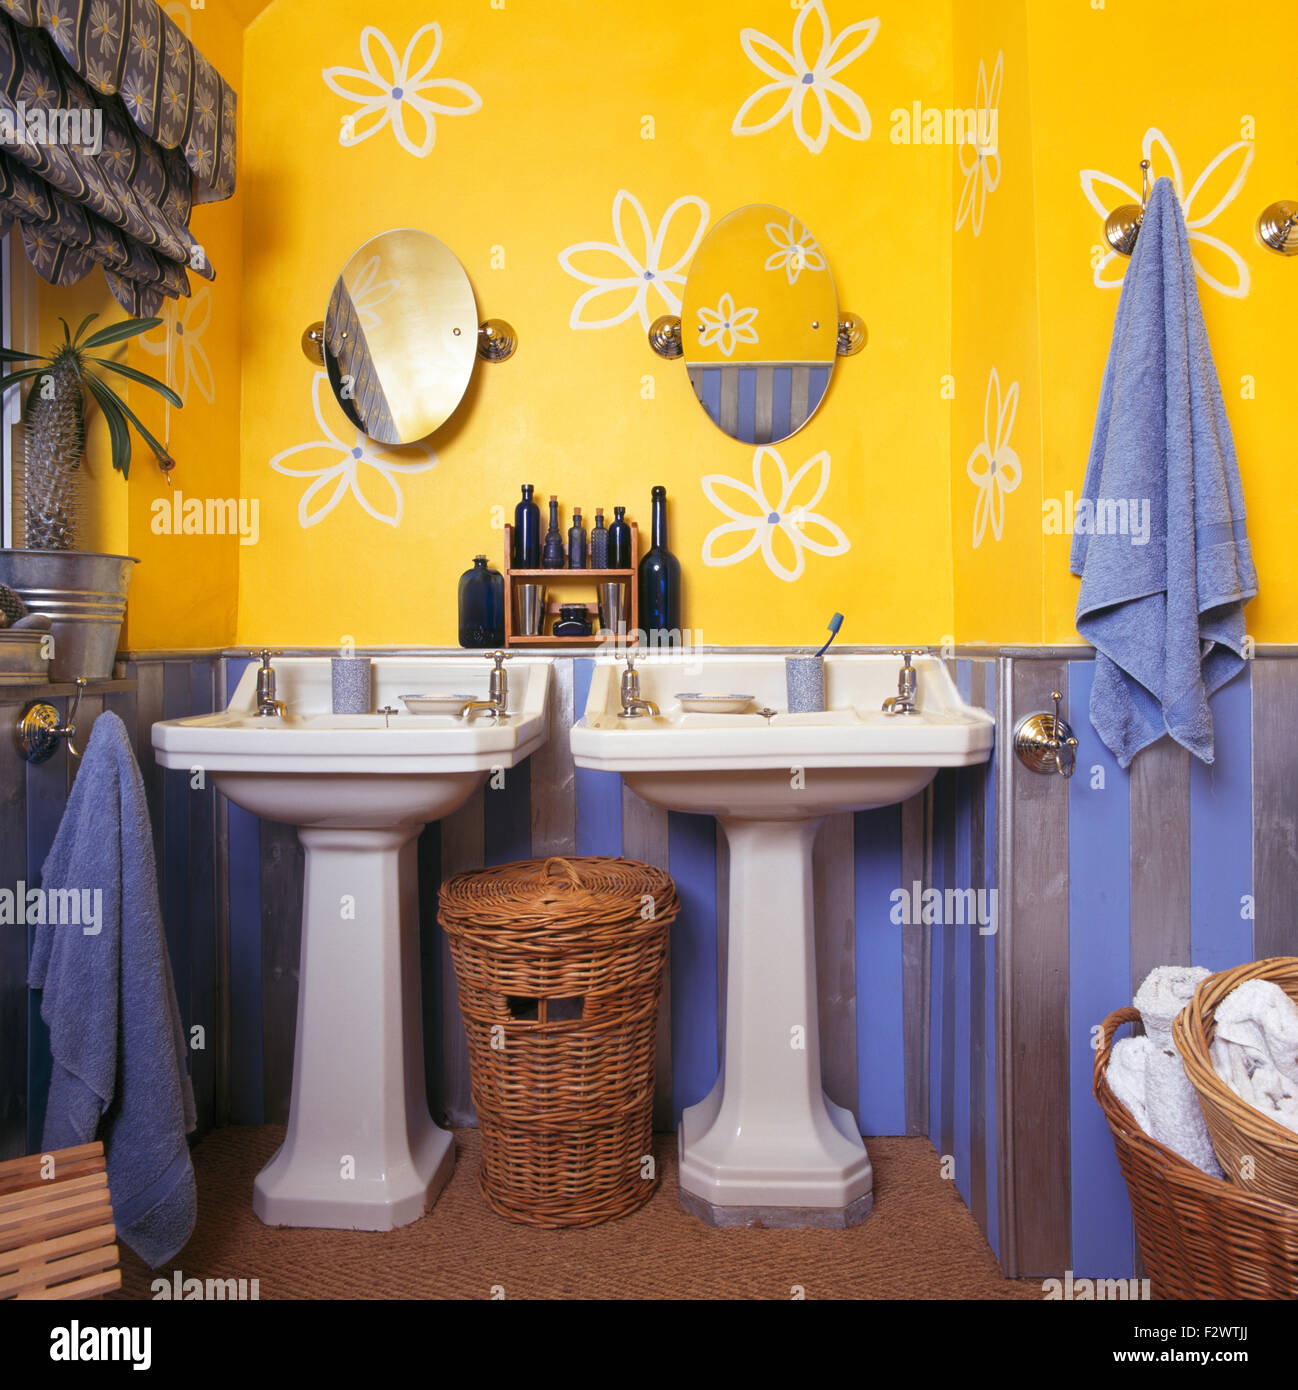 Stylised flowers drawn on wall above double pedestal basins in bright yellow and blue nineties bathroom - Stock Image